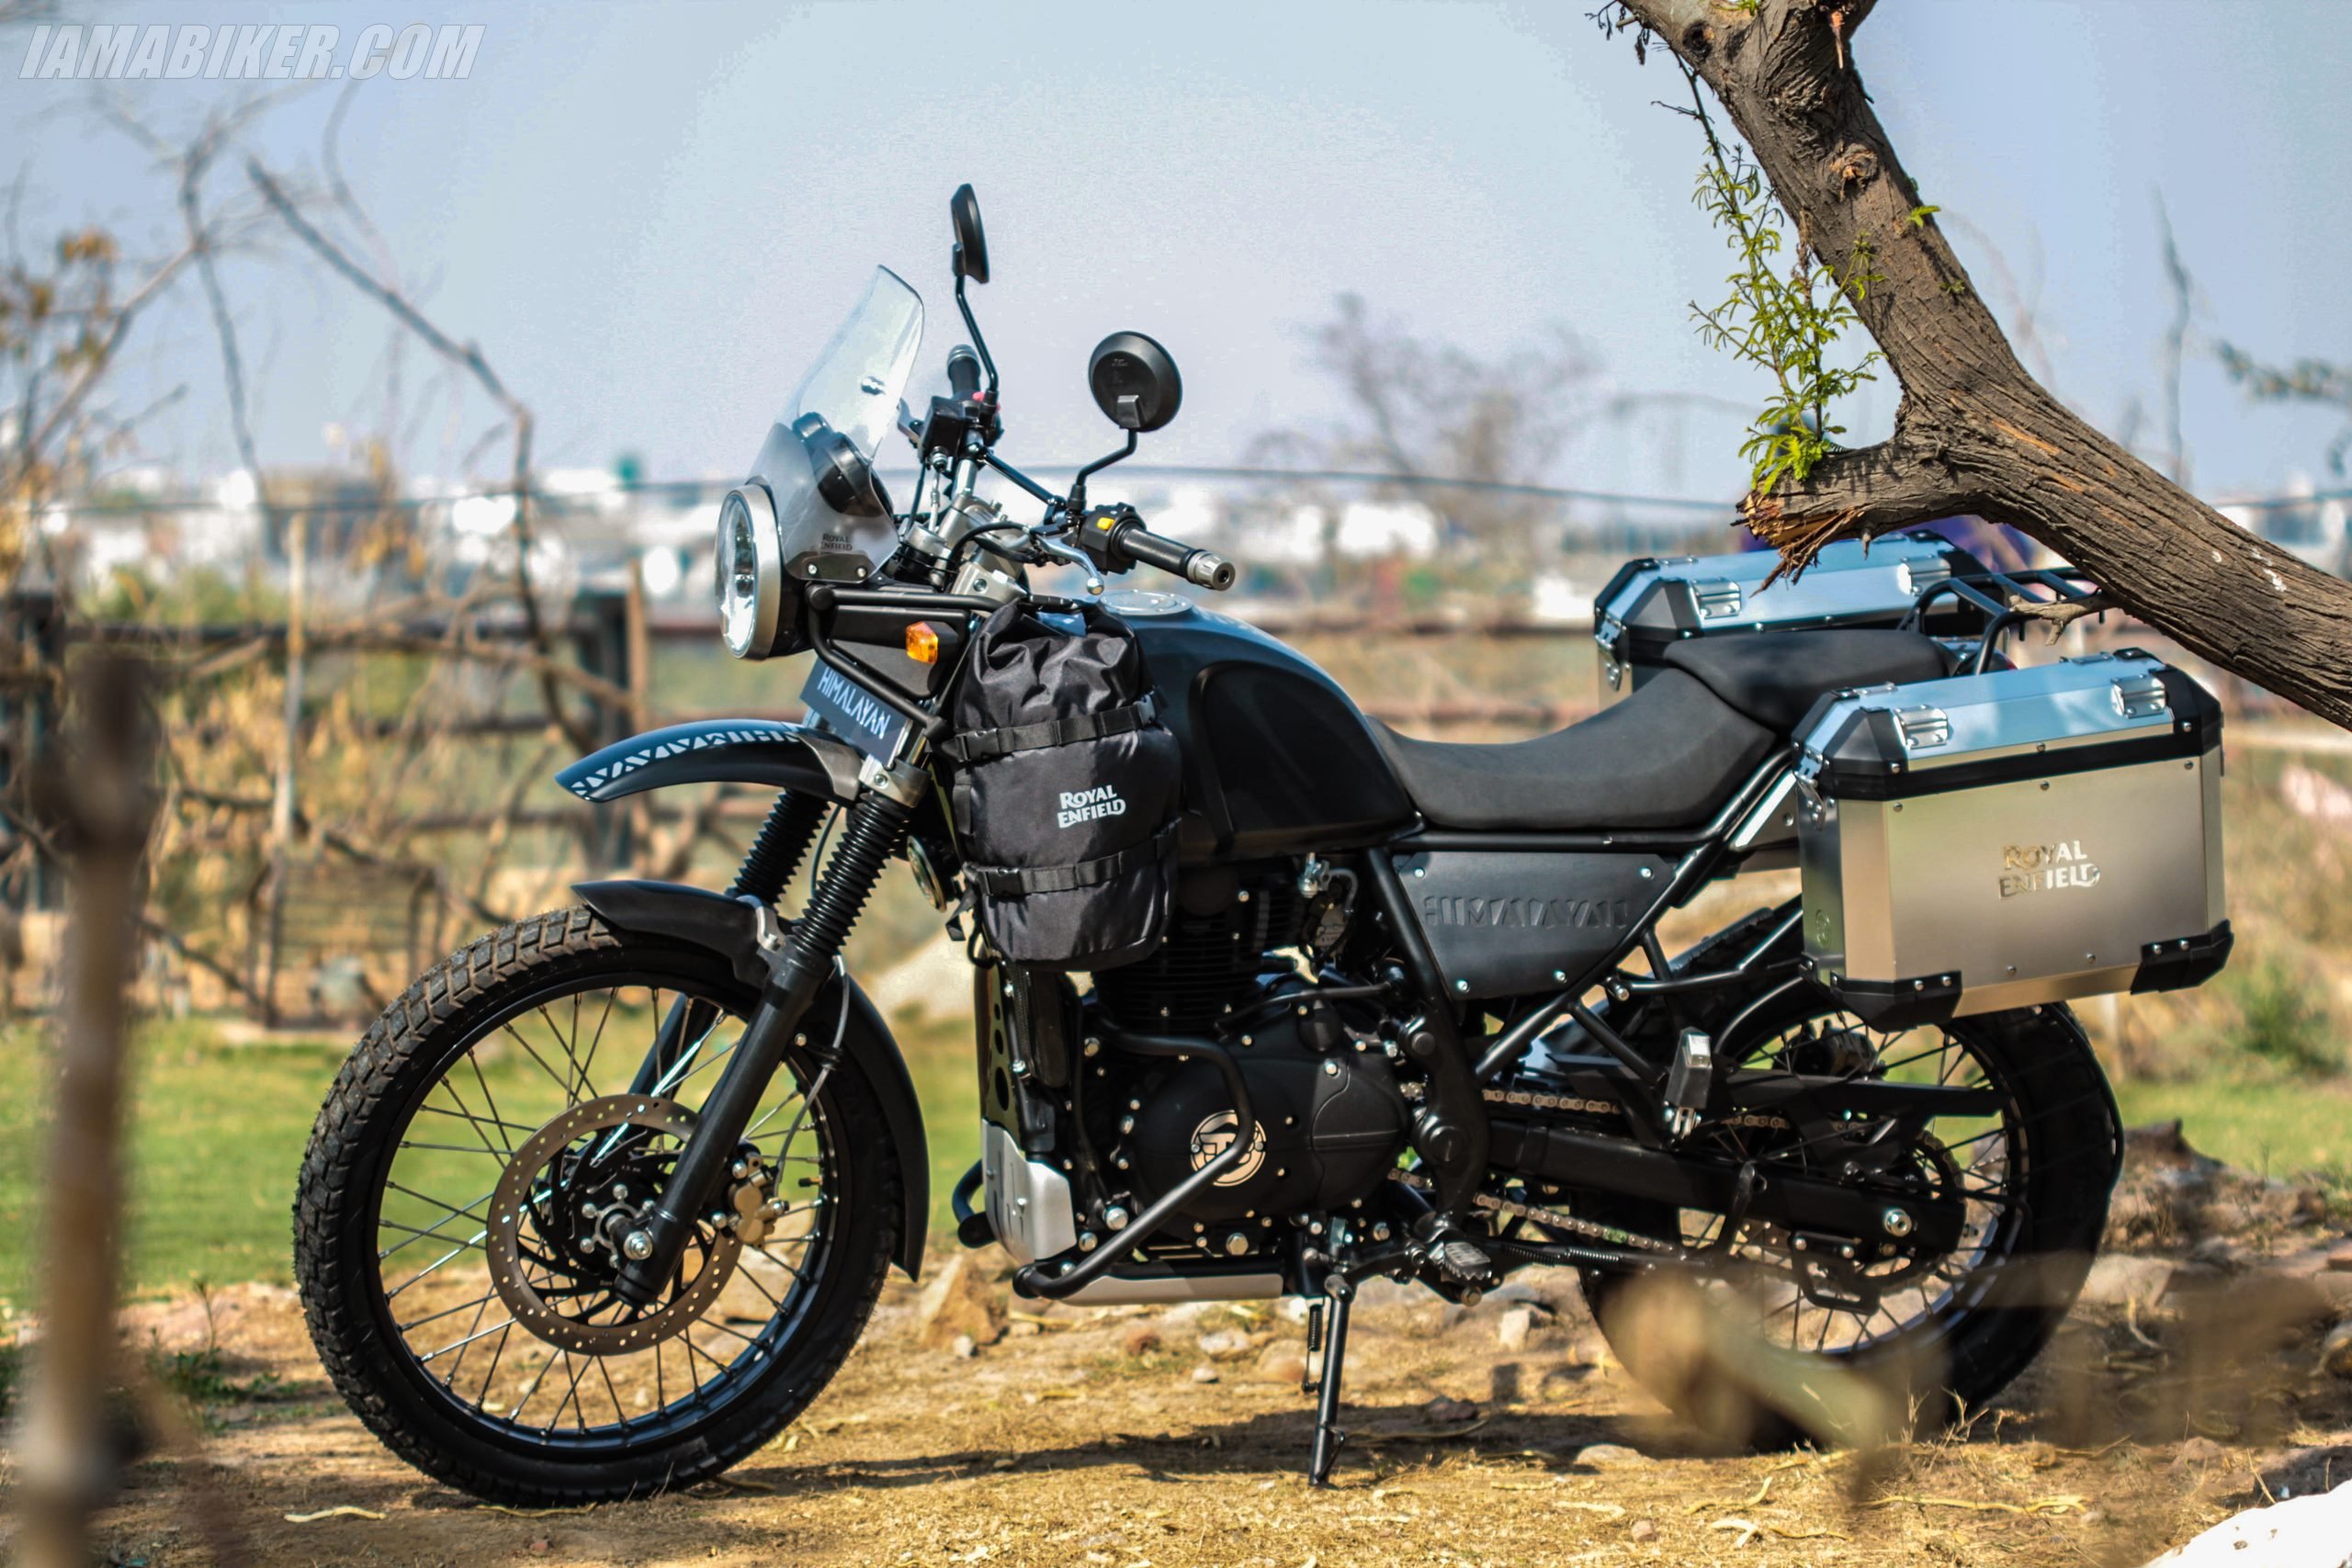 Hd wallpaper royal enfield - Hd Wallpaper Royal Enfield 40